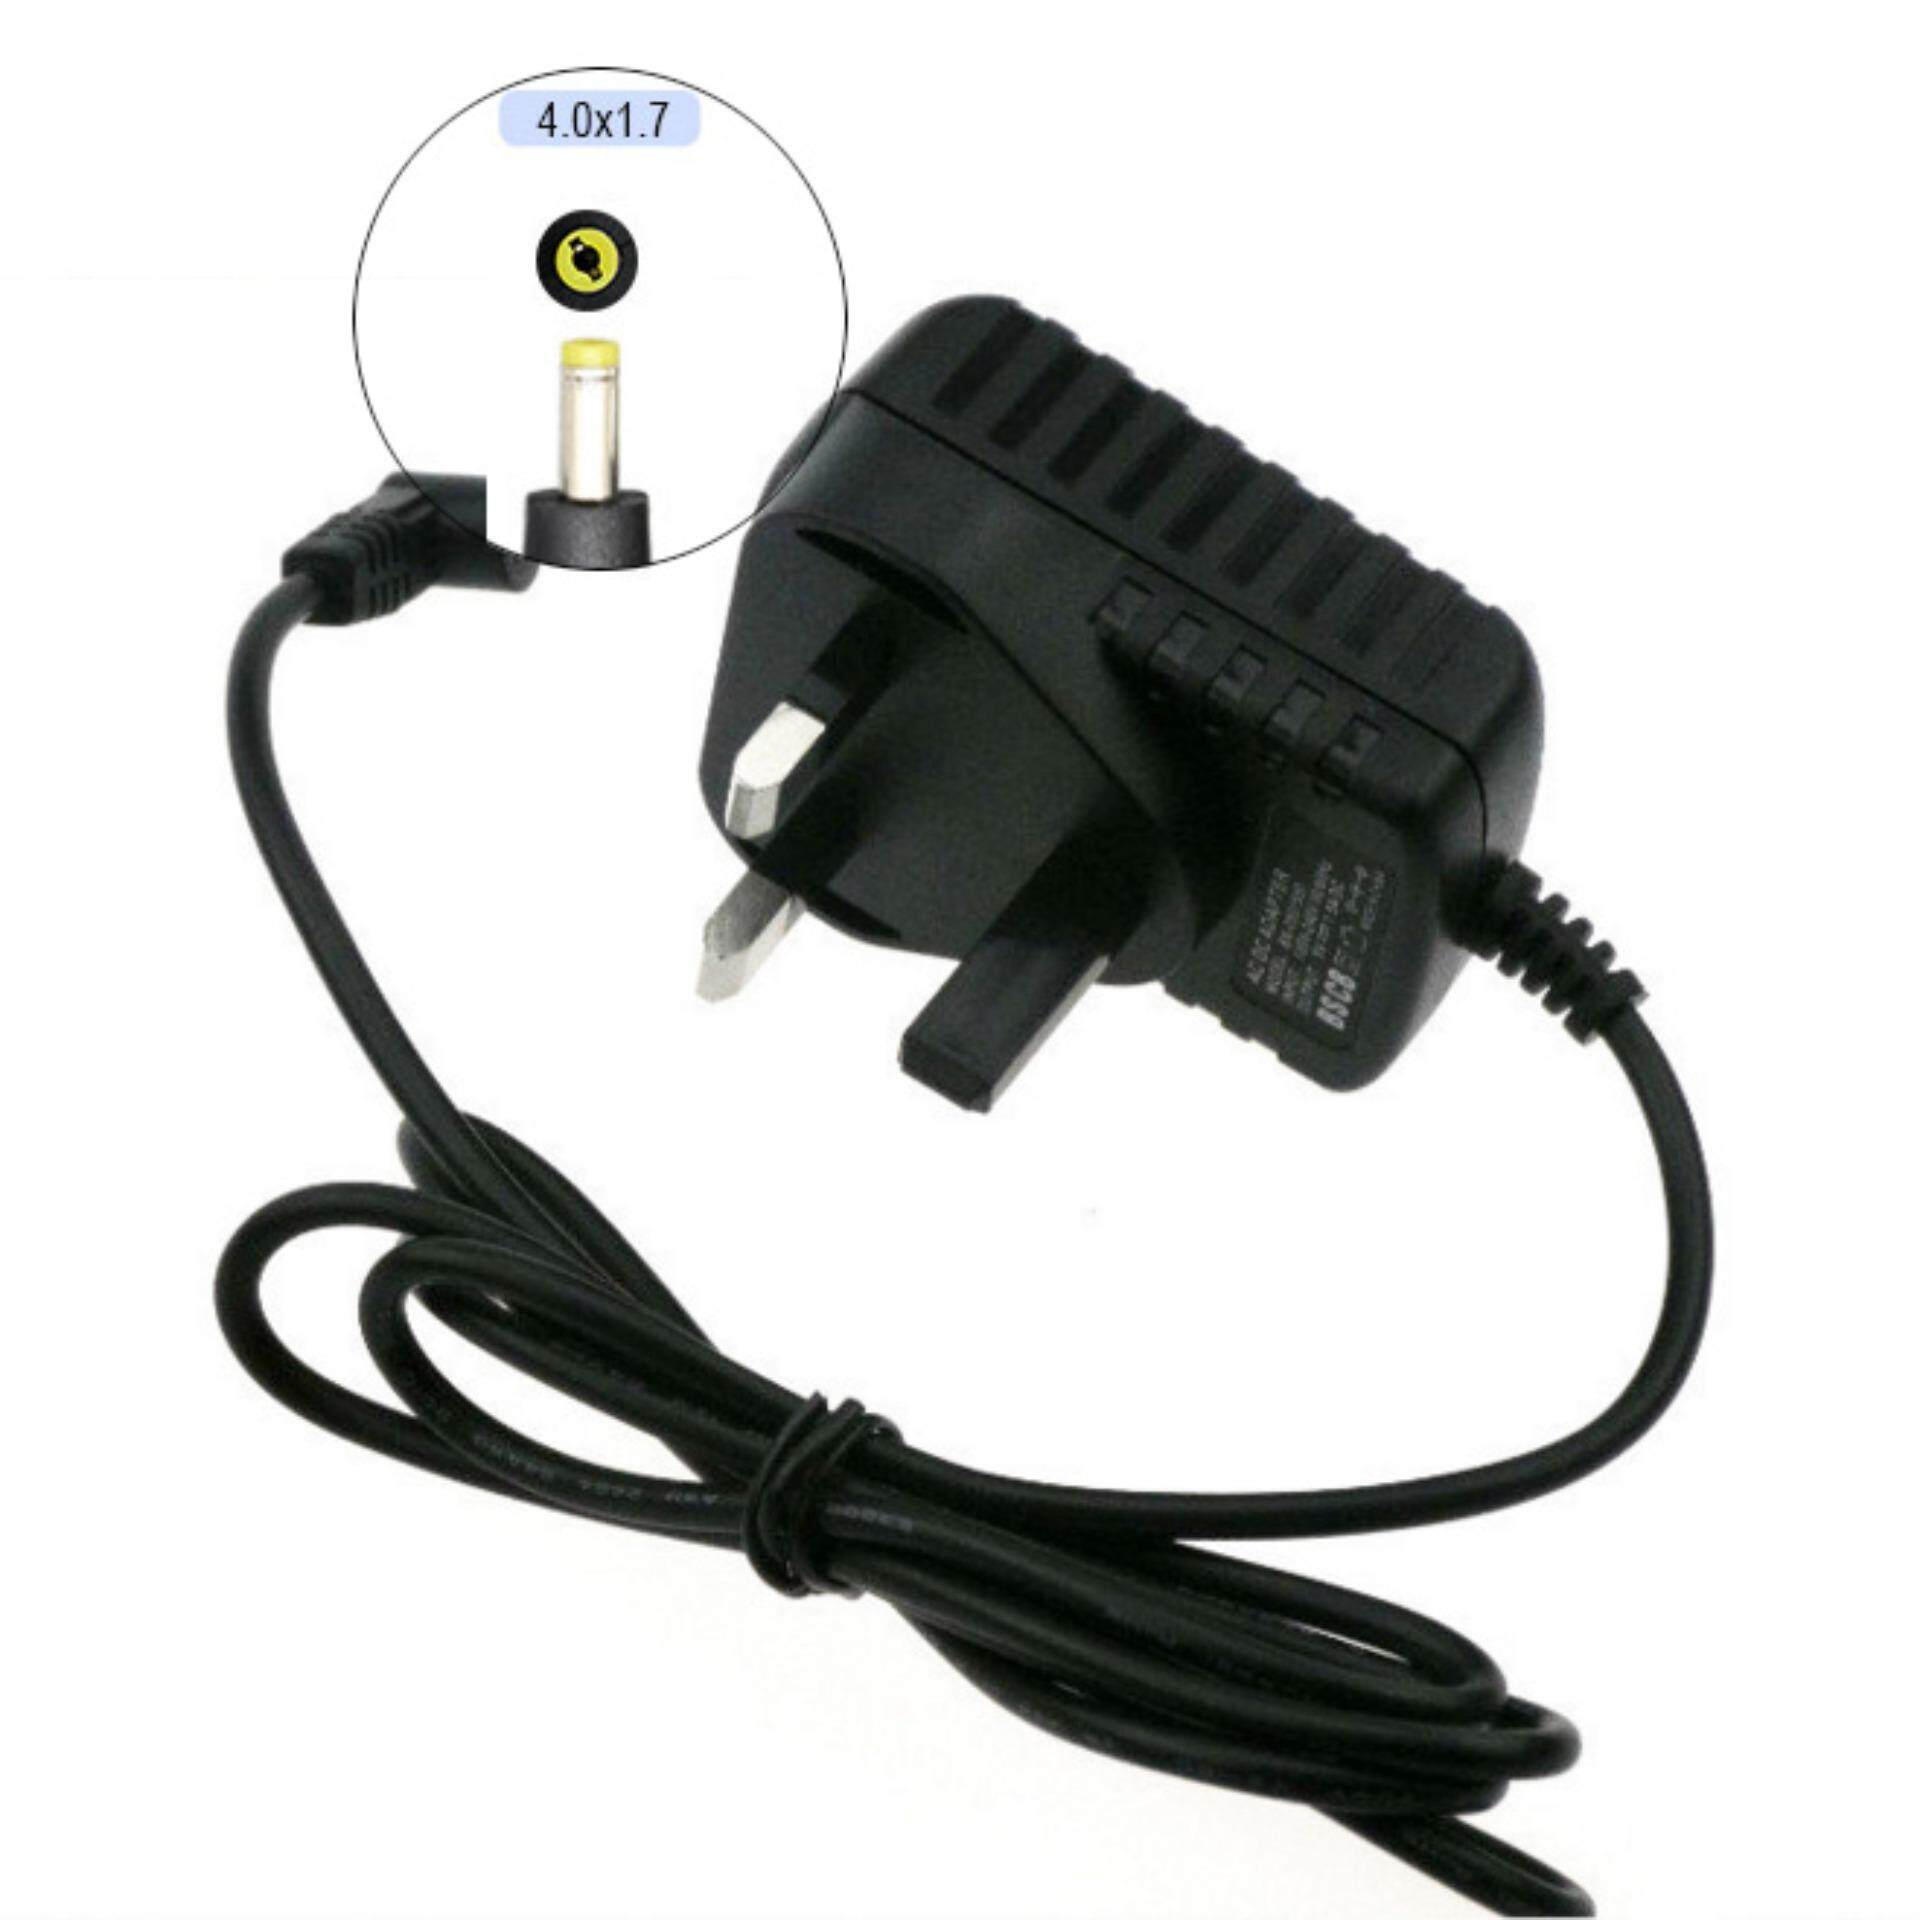 4.0*1.7mm Ac Adapter 5V 2A 3 Pin Plug Type For Malaysia